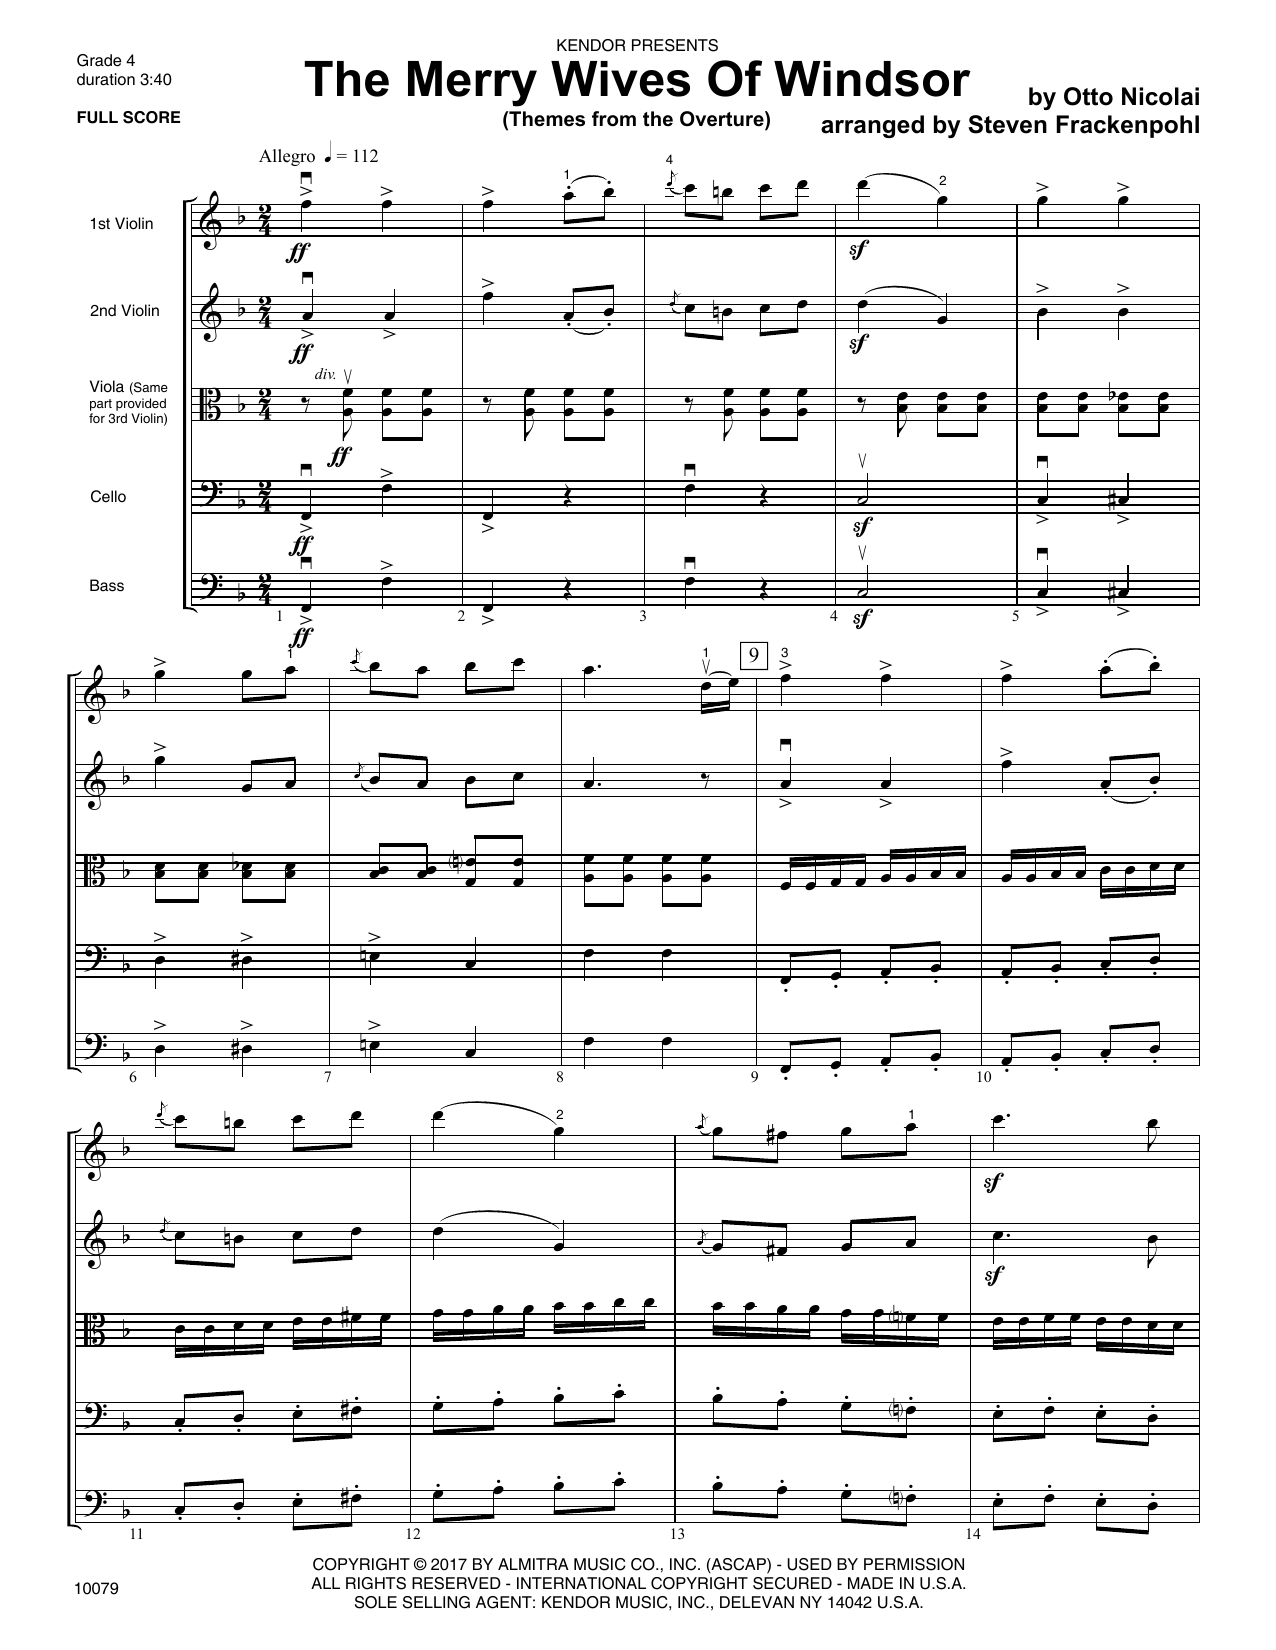 Steven Frackenpohl The Merry Wives Of Windsor (Themes From The Overture) - Full Score sheet music notes and chords. Download Printable PDF.